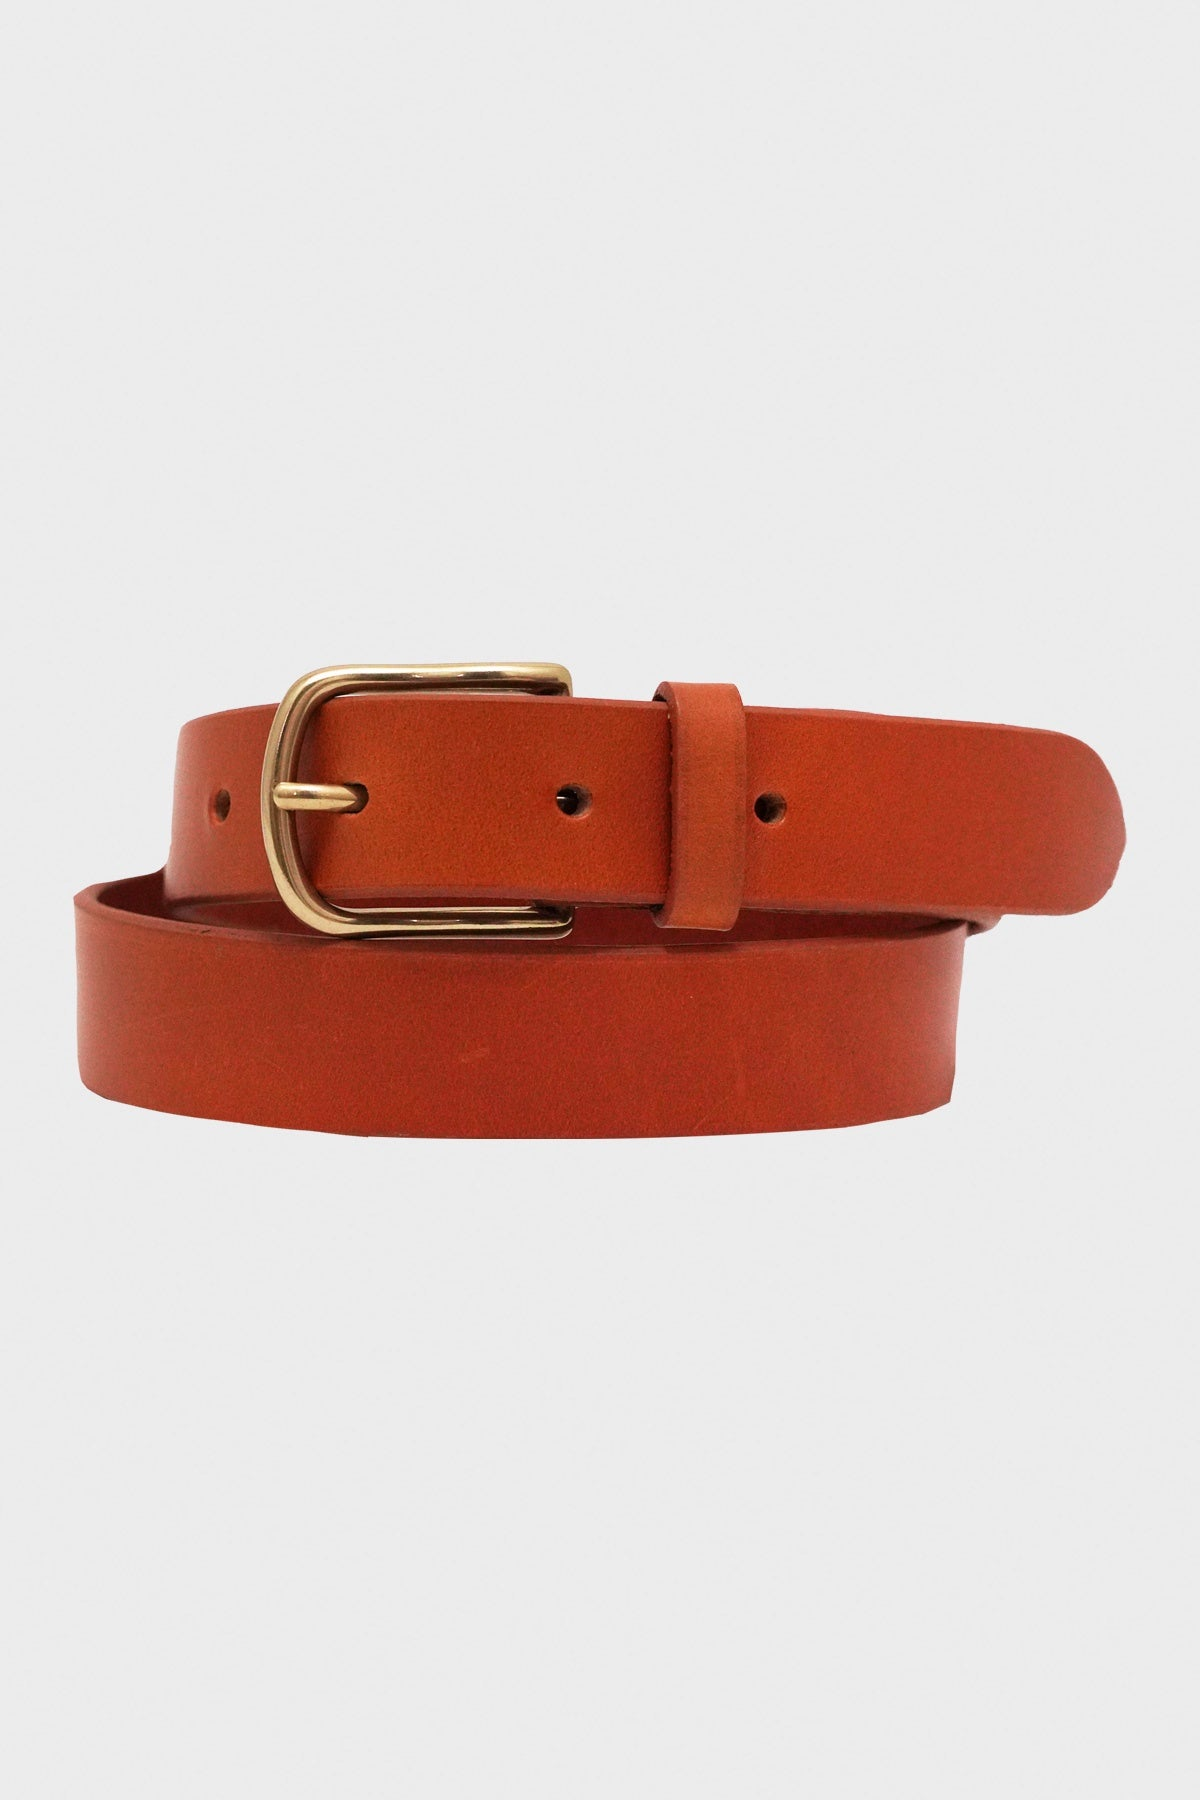 Laperruque - Belt - Gold Leather and Brass Buckle - Canoe Club